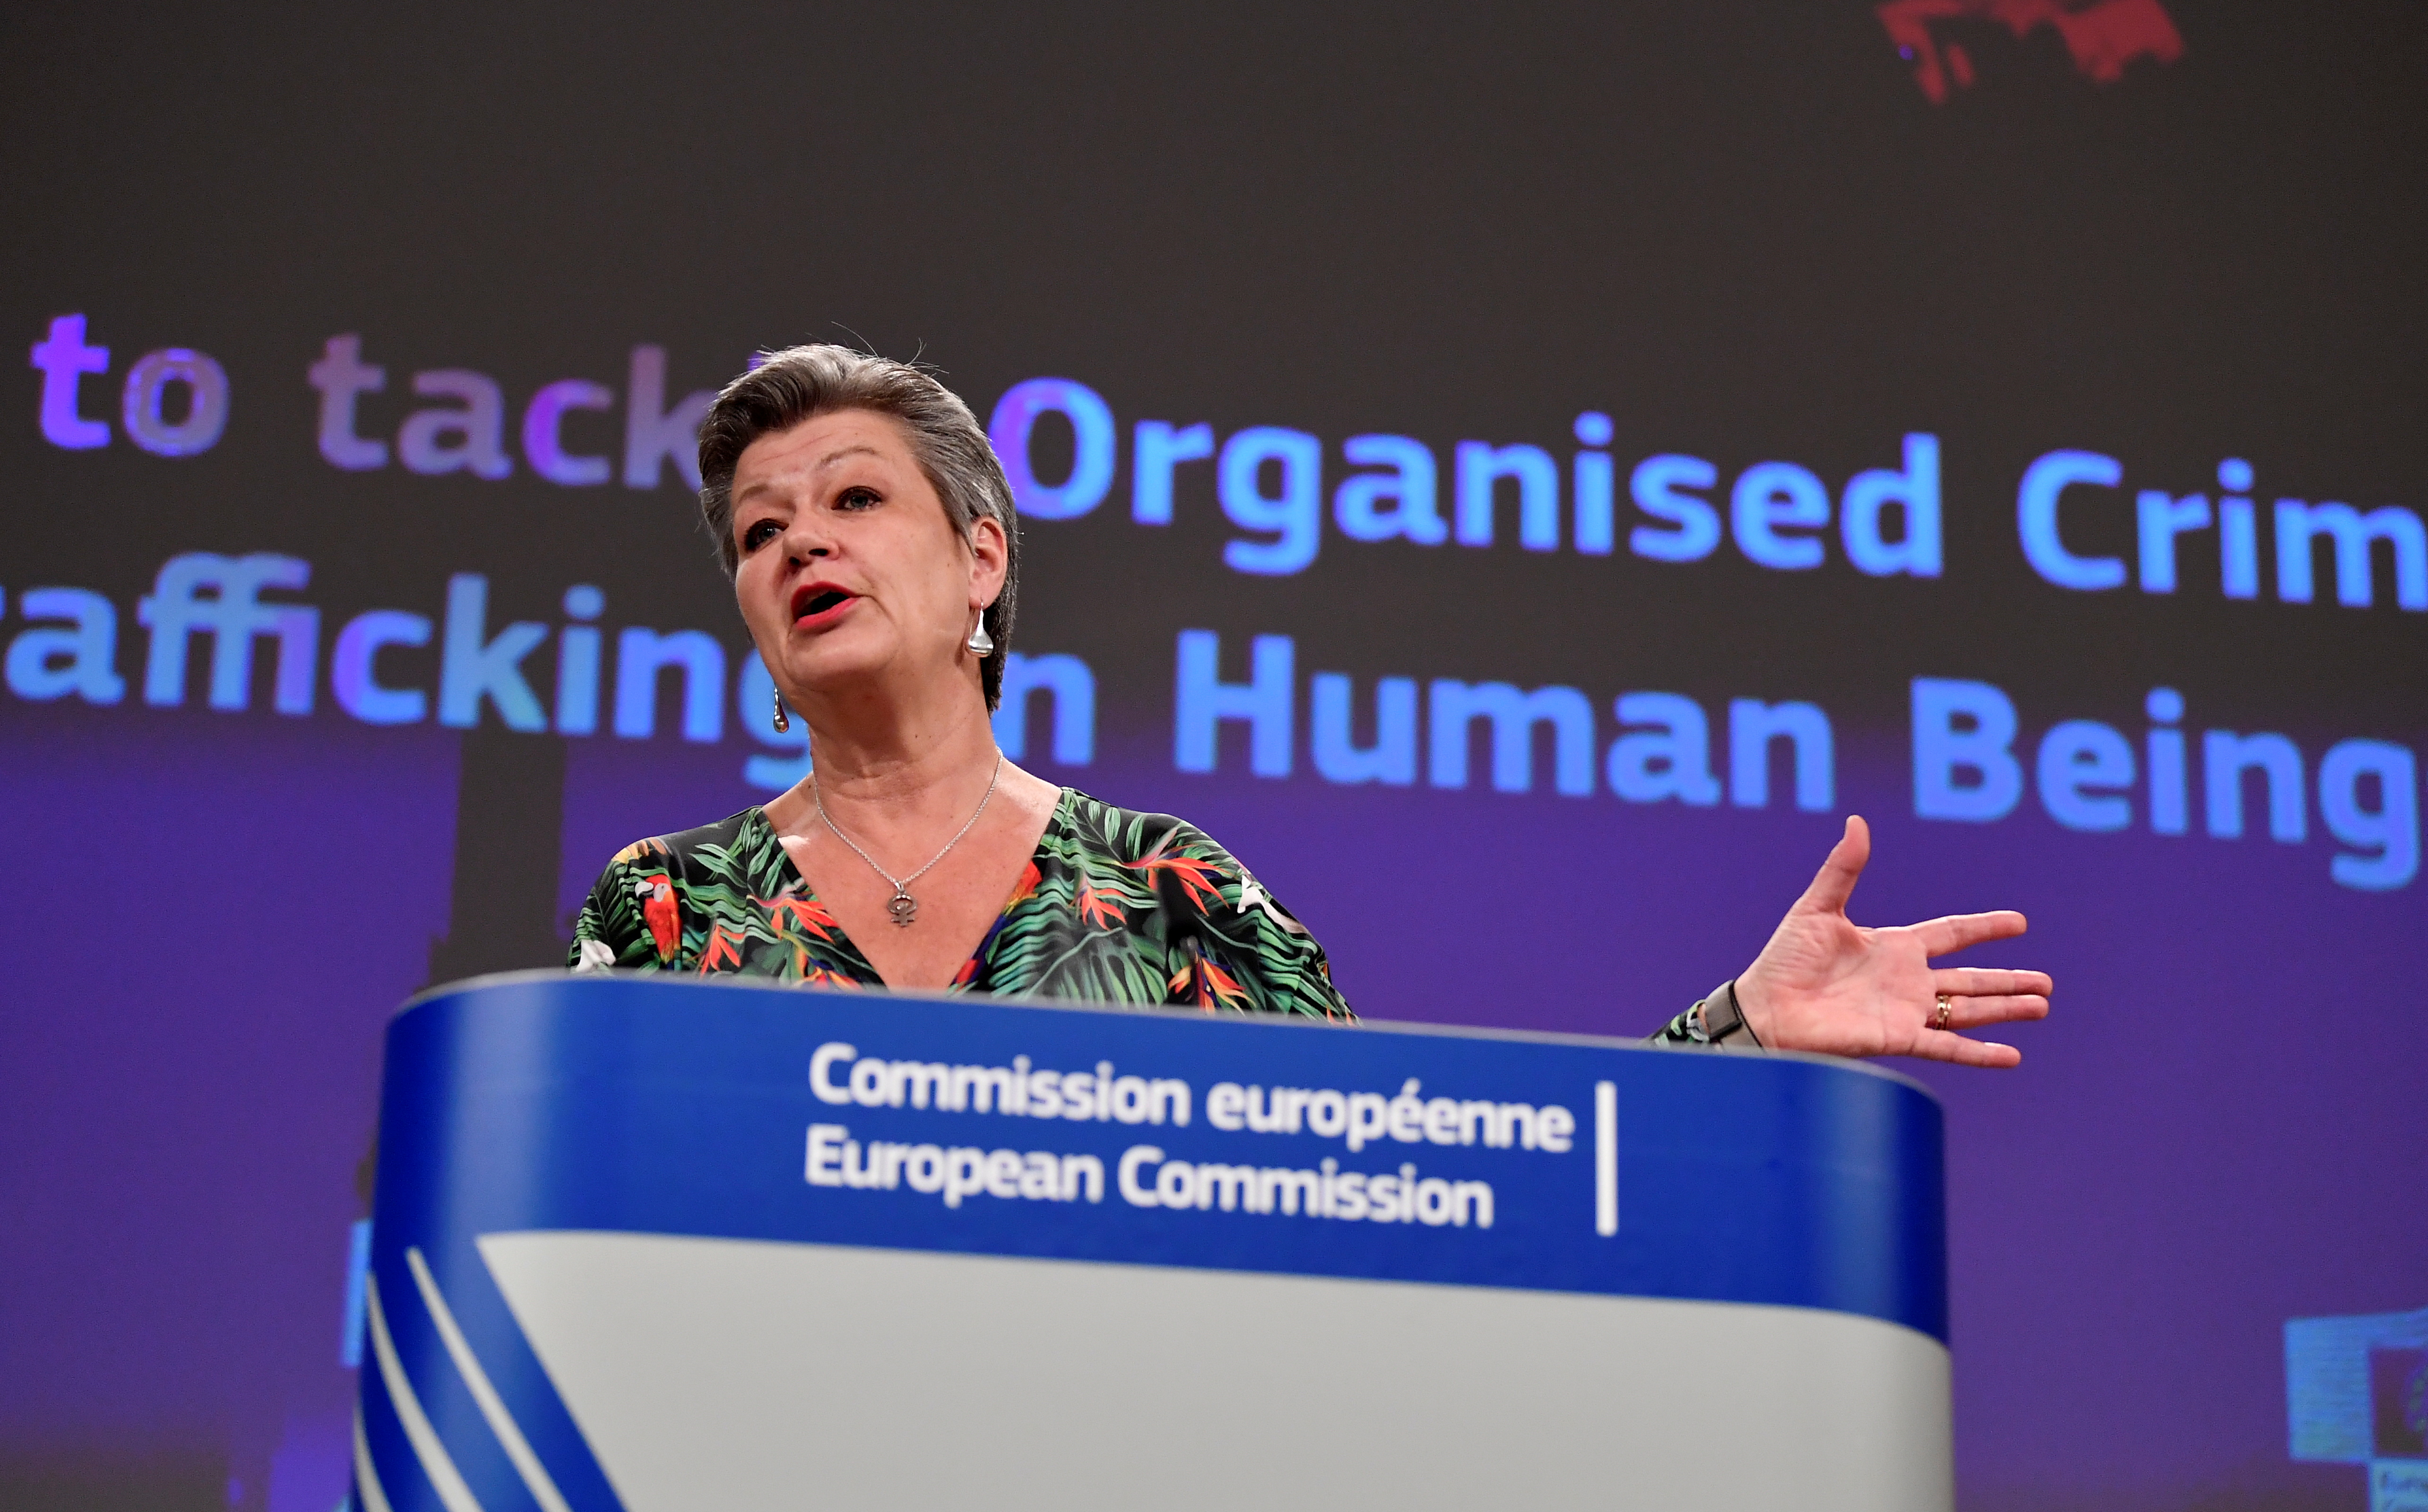 European Commissioner for Home Affairs Ylva Johansson speaks during a news conference at the EU headquarters in Brussels, Belgium April 14, 2021. John Thys/Pool via REUTERS